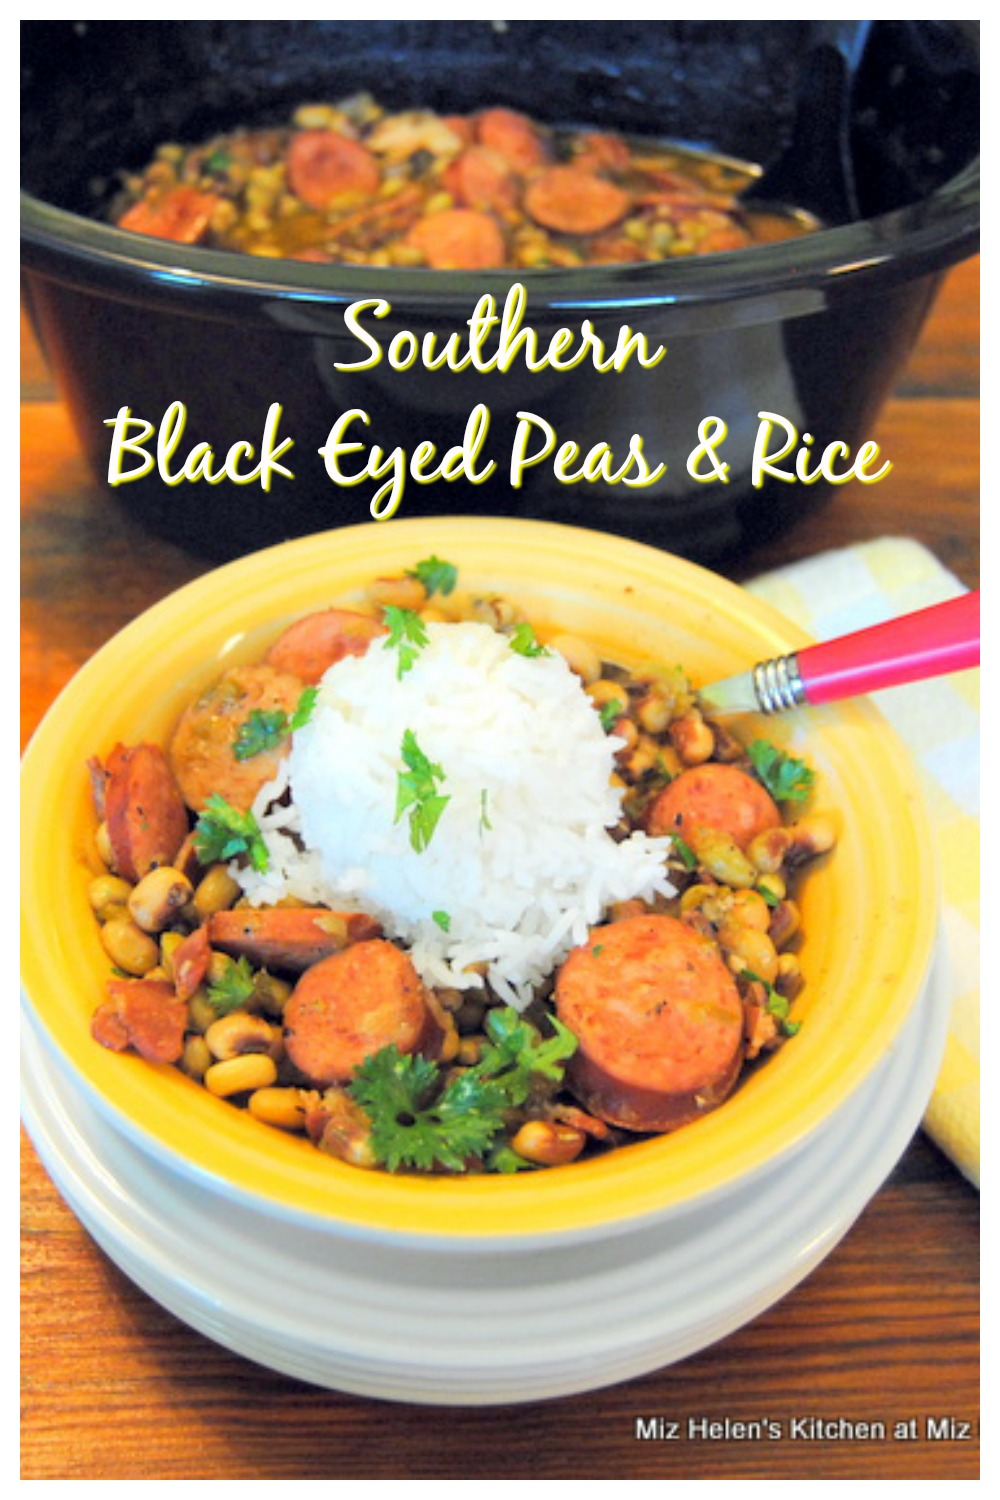 Slow Cooker Southern Black Eyed Peas & Rice